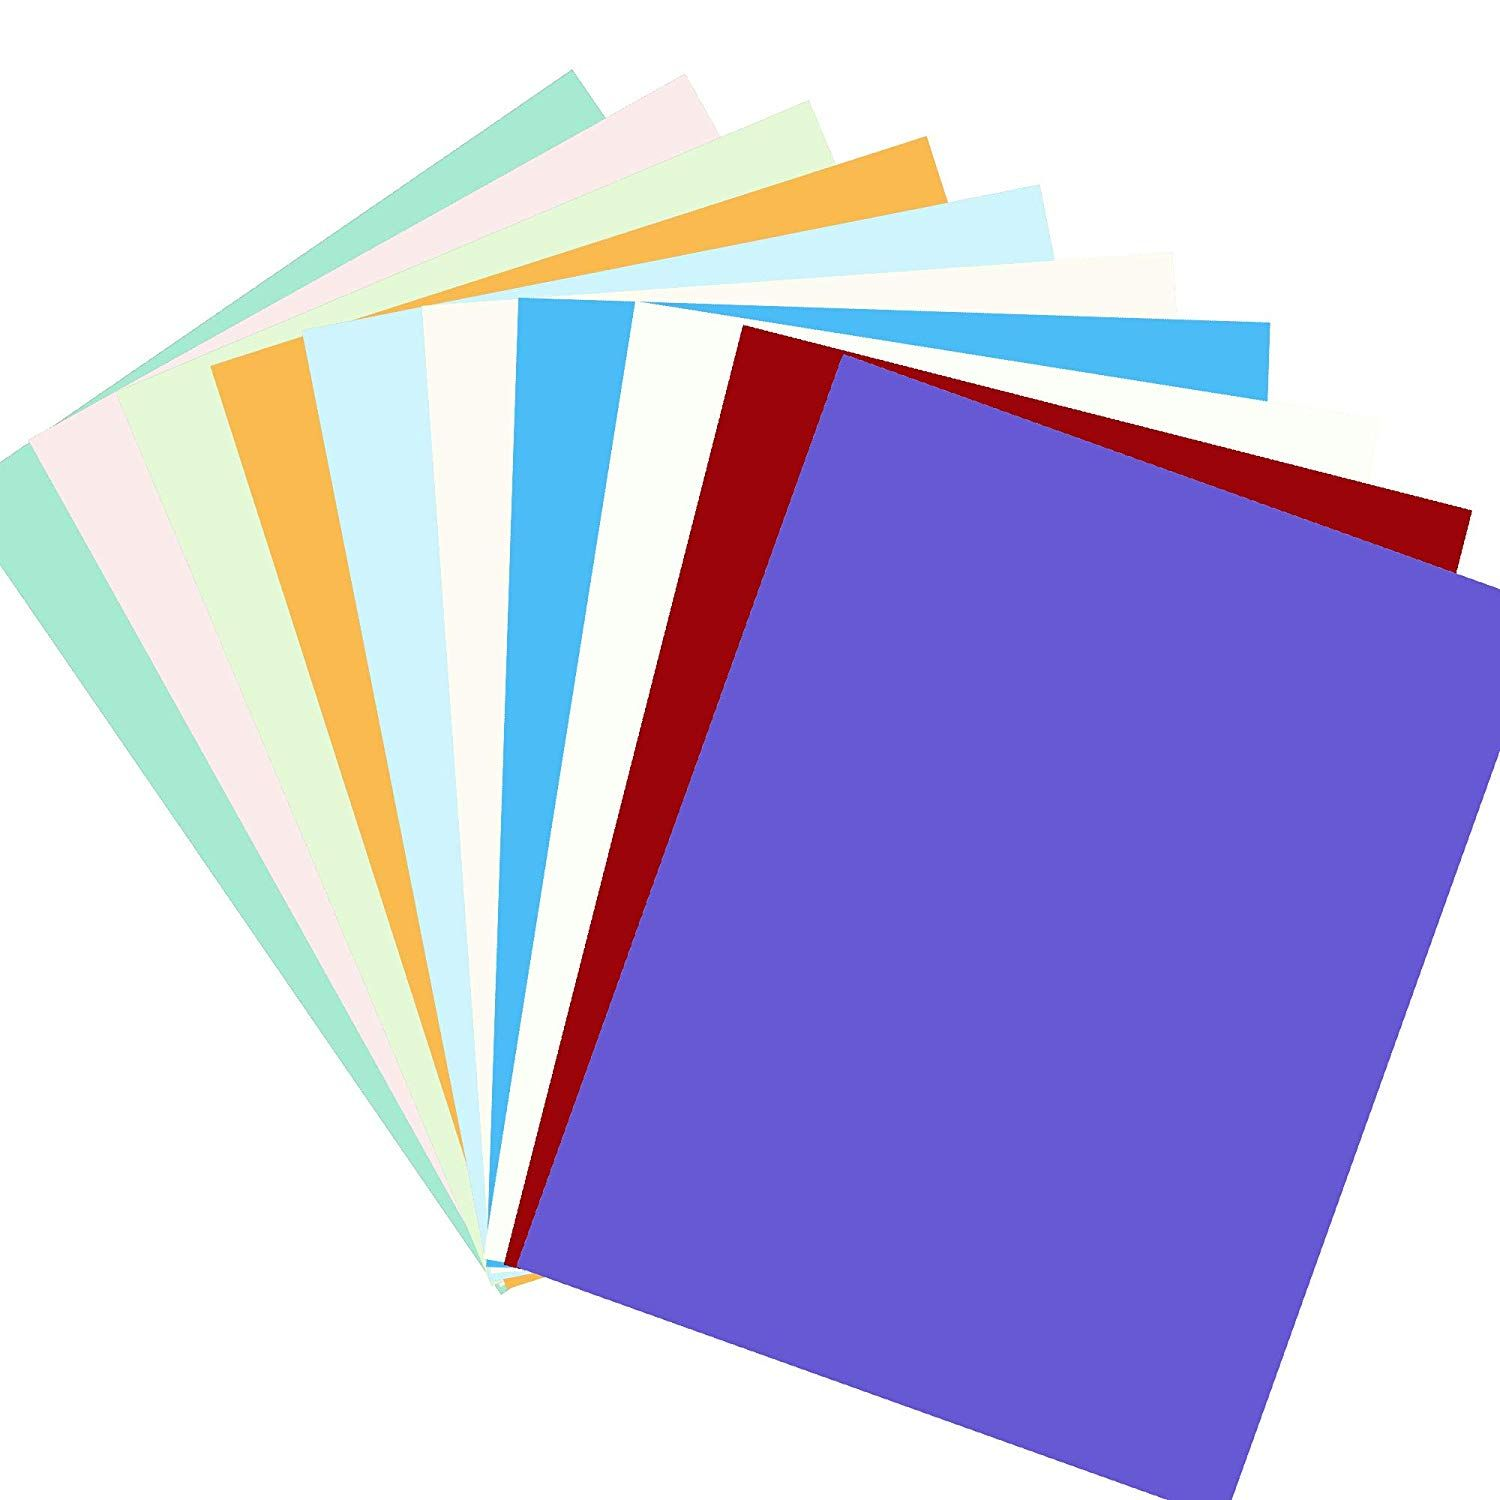 Diy Paper Cardstock 50 Sheets 10 Vivid Color Cardstock A4 Size 230gms Craft Paper For Card Making Scrapb Diy Scrapbook Diy Craft Projects Halloween Party Decor